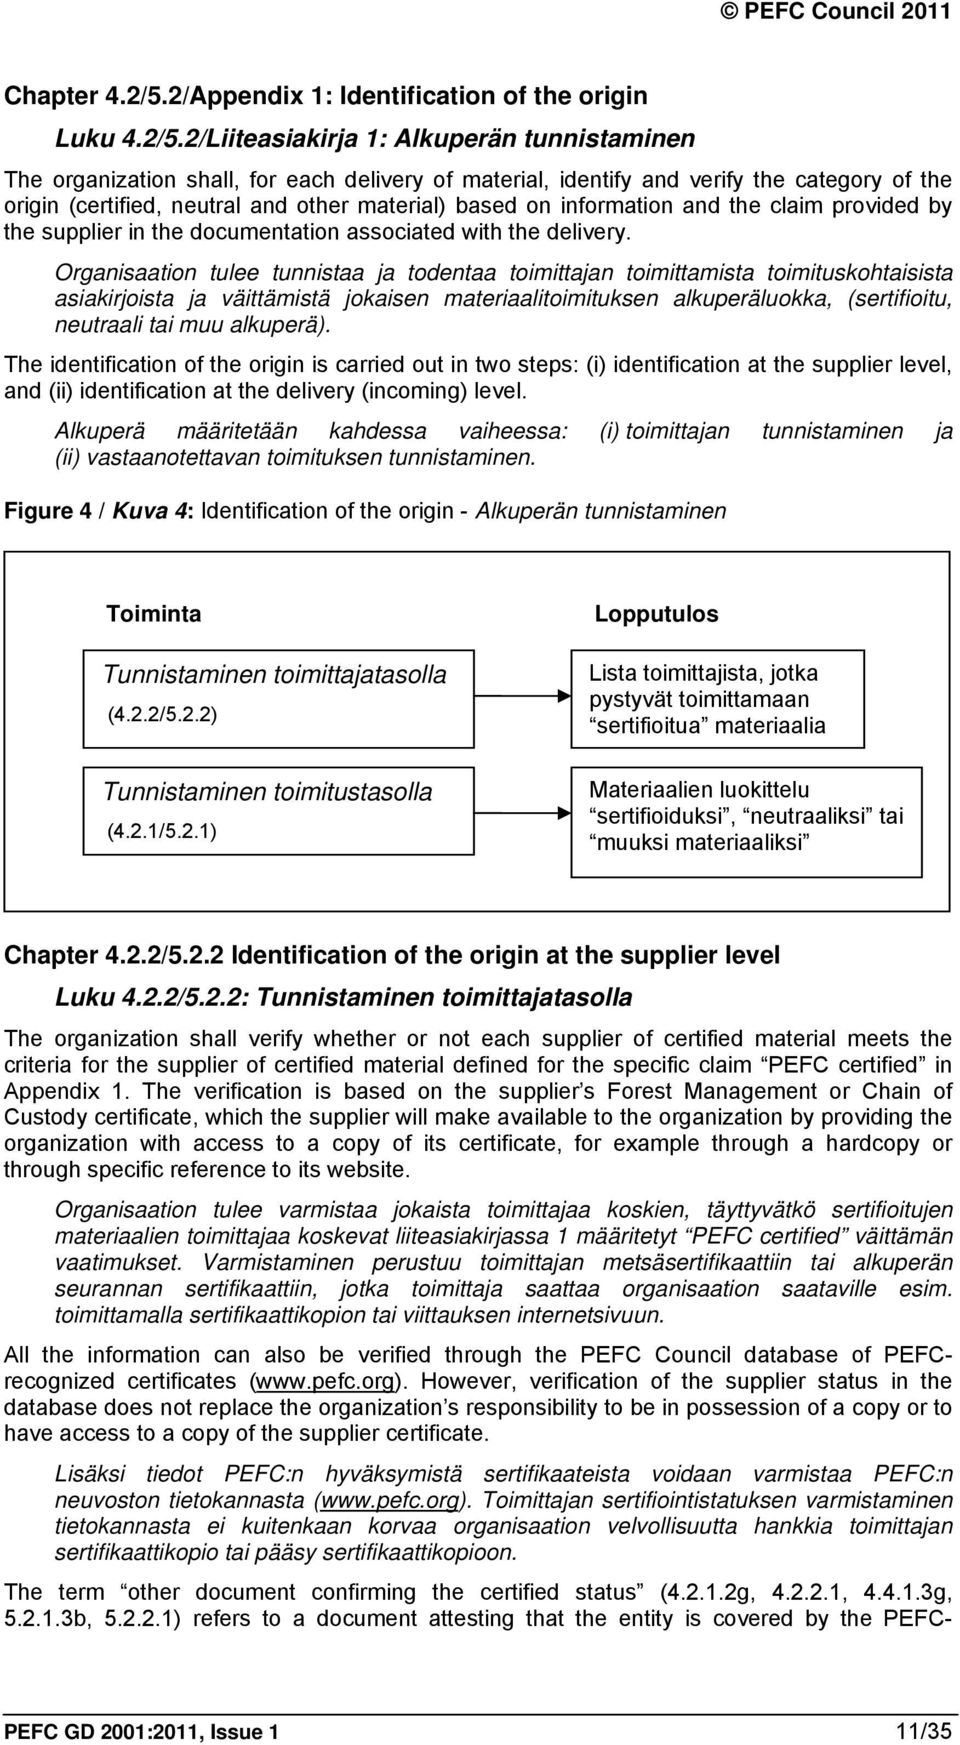 2/Liiteasiakirja 1: Alkuperän tunnistaminen The organization shall, for each delivery of material, identify and verify the category of the origin (certified, neutral and other material) based on